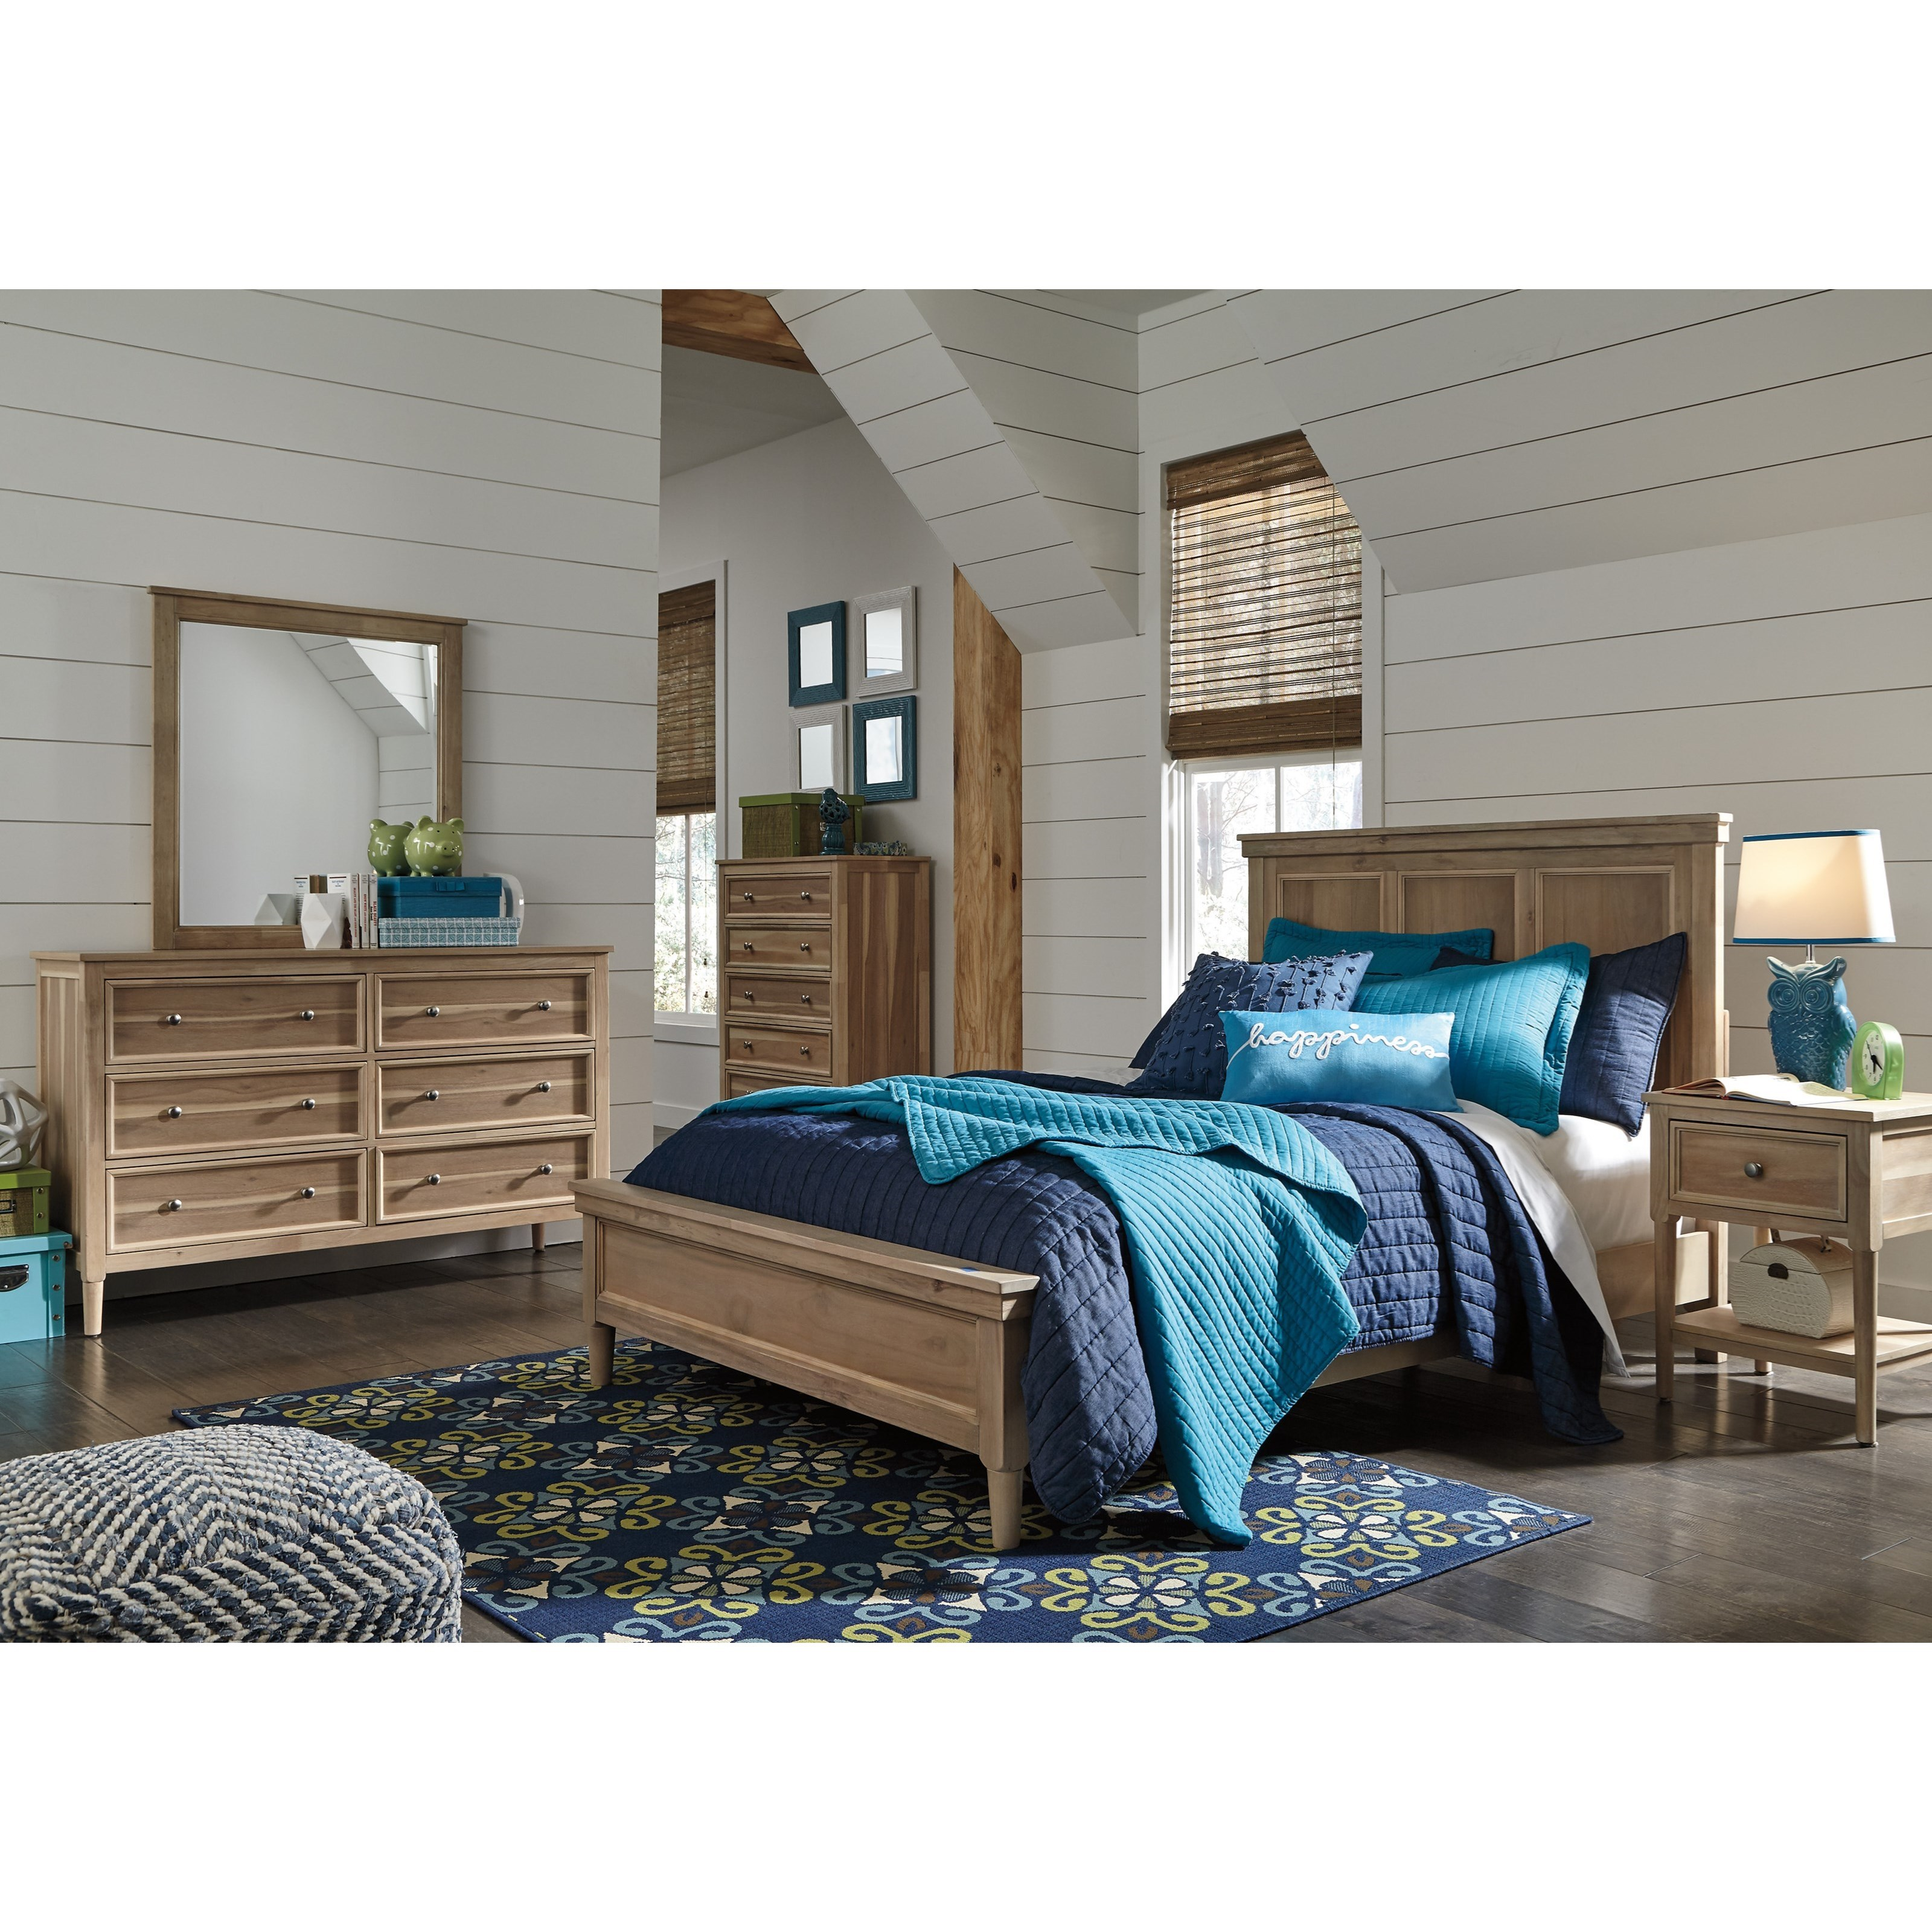 Signature design by ashley klasholm queen bedroom group for Bedroom furniture groups